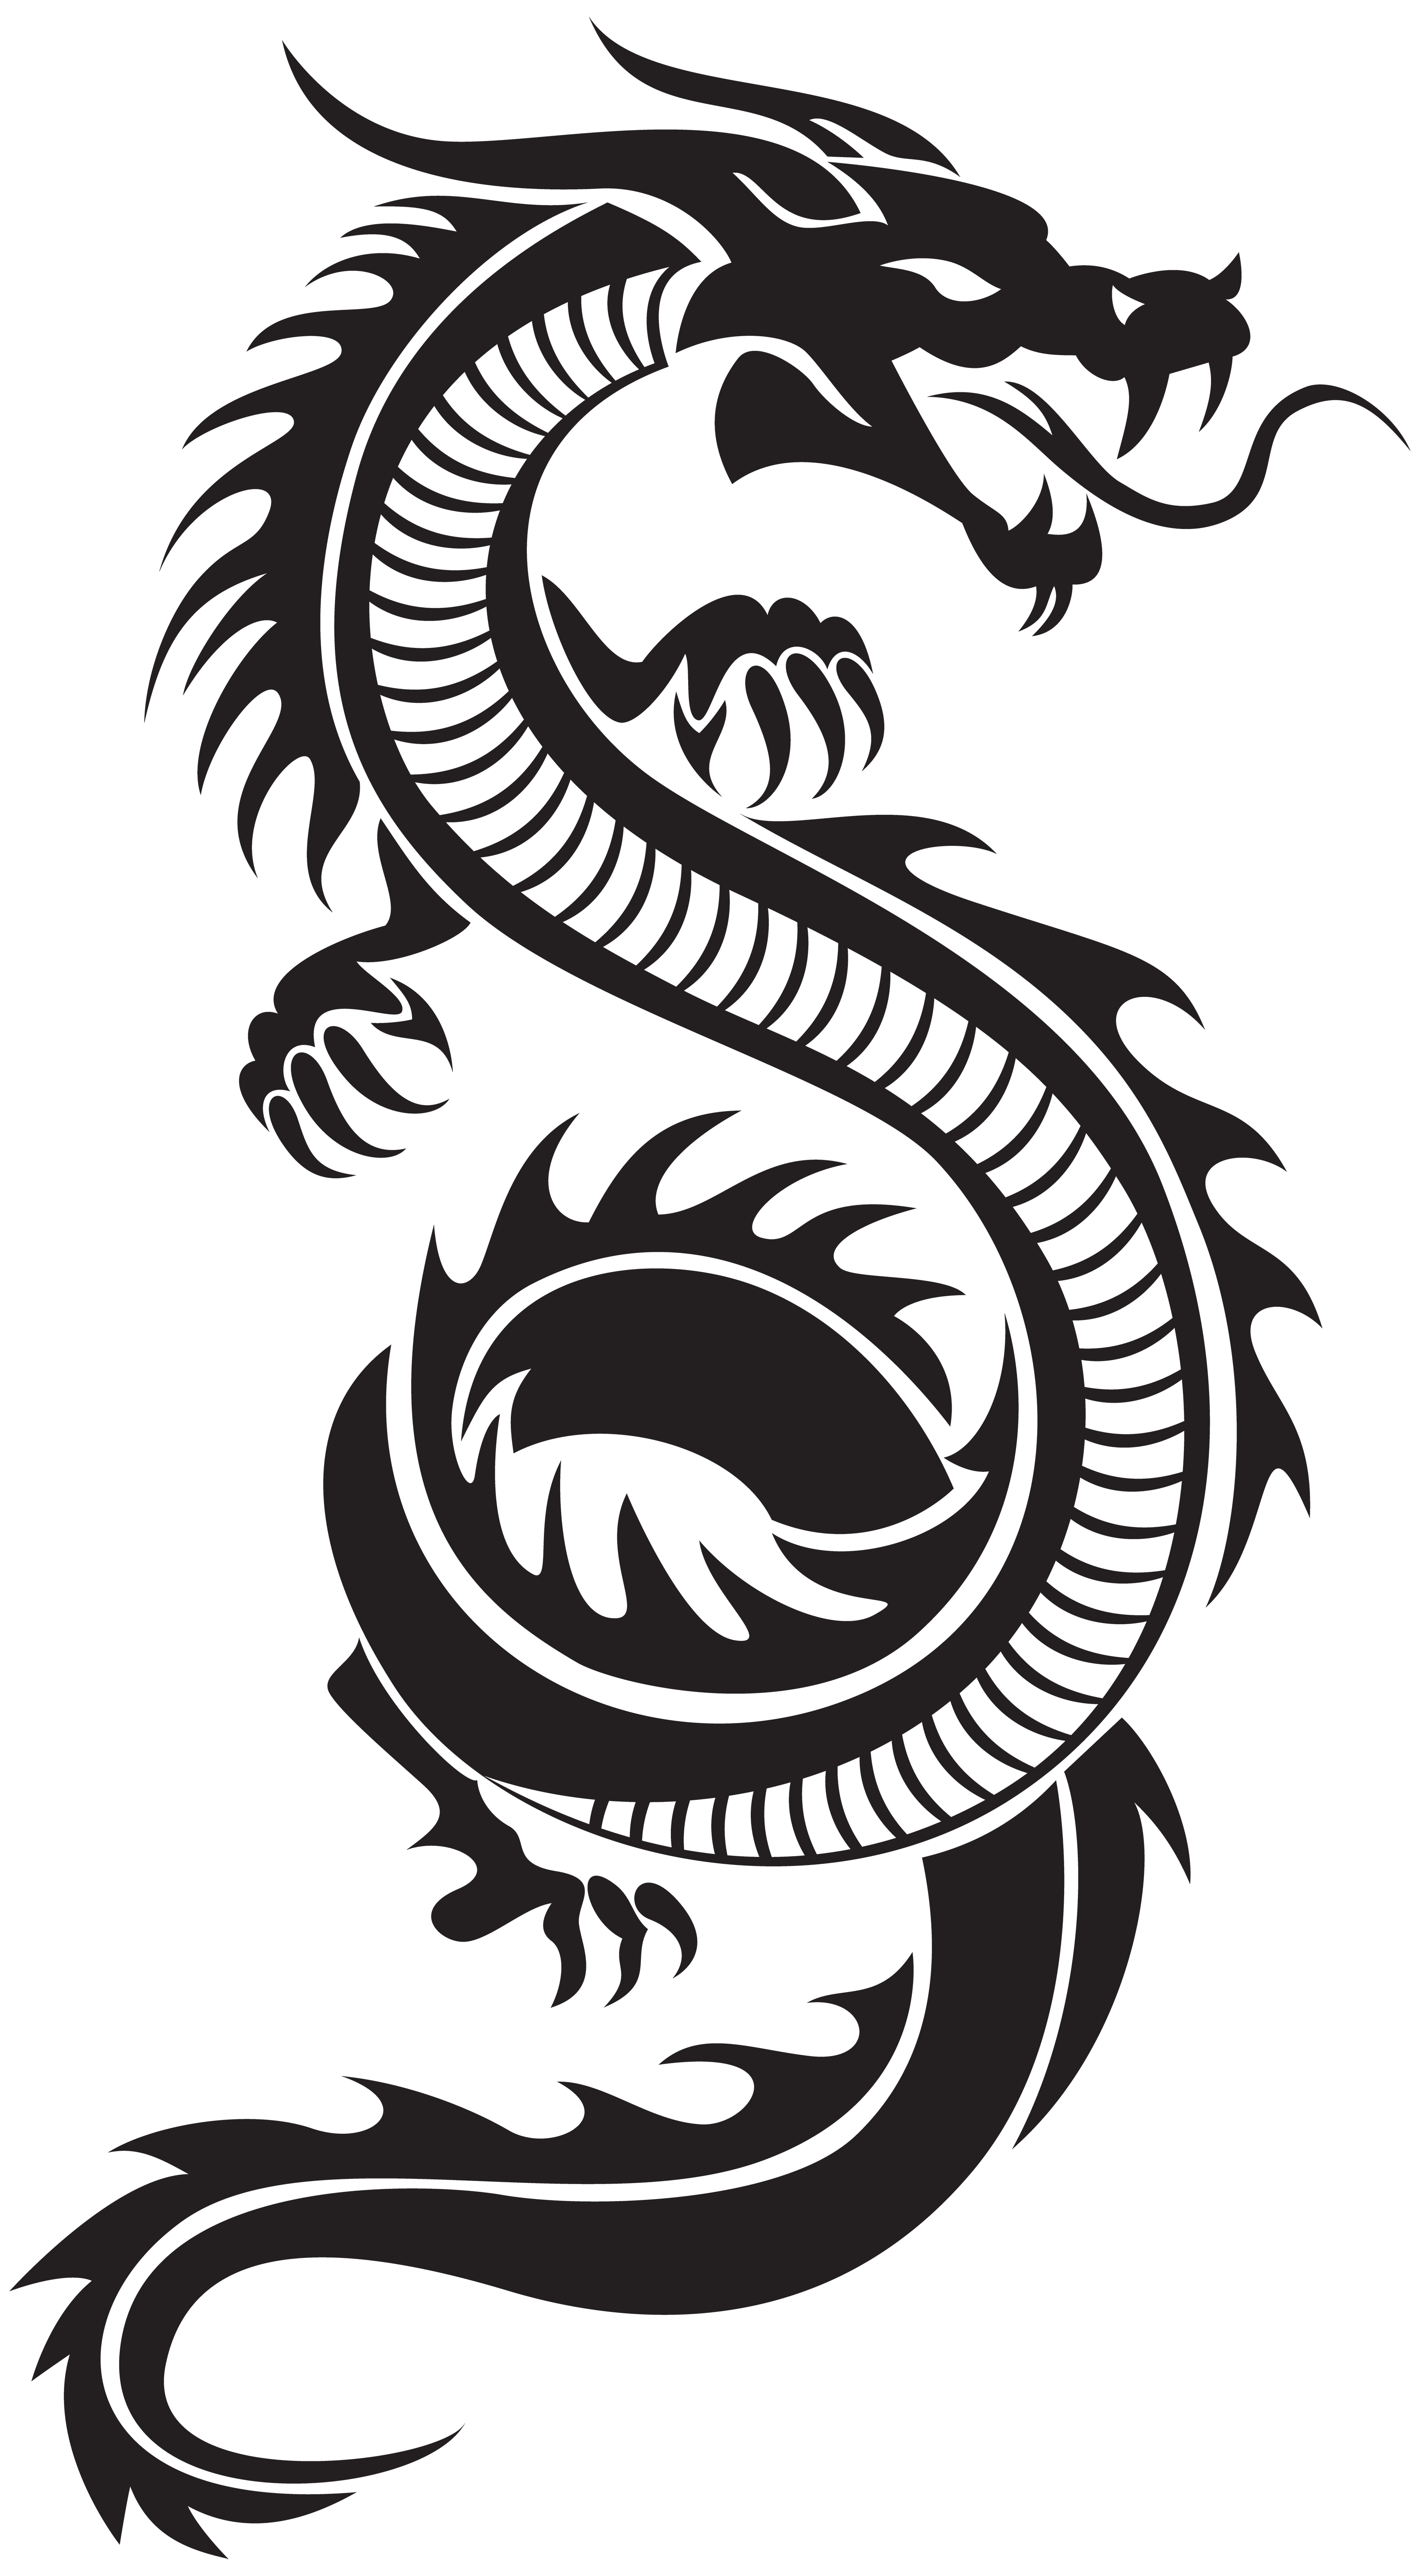 Chinese Dragon Silhouette Png Clip Art Tatuajes De Dragon Tribal Tatuajes Dragones Tatuaje De Dragon